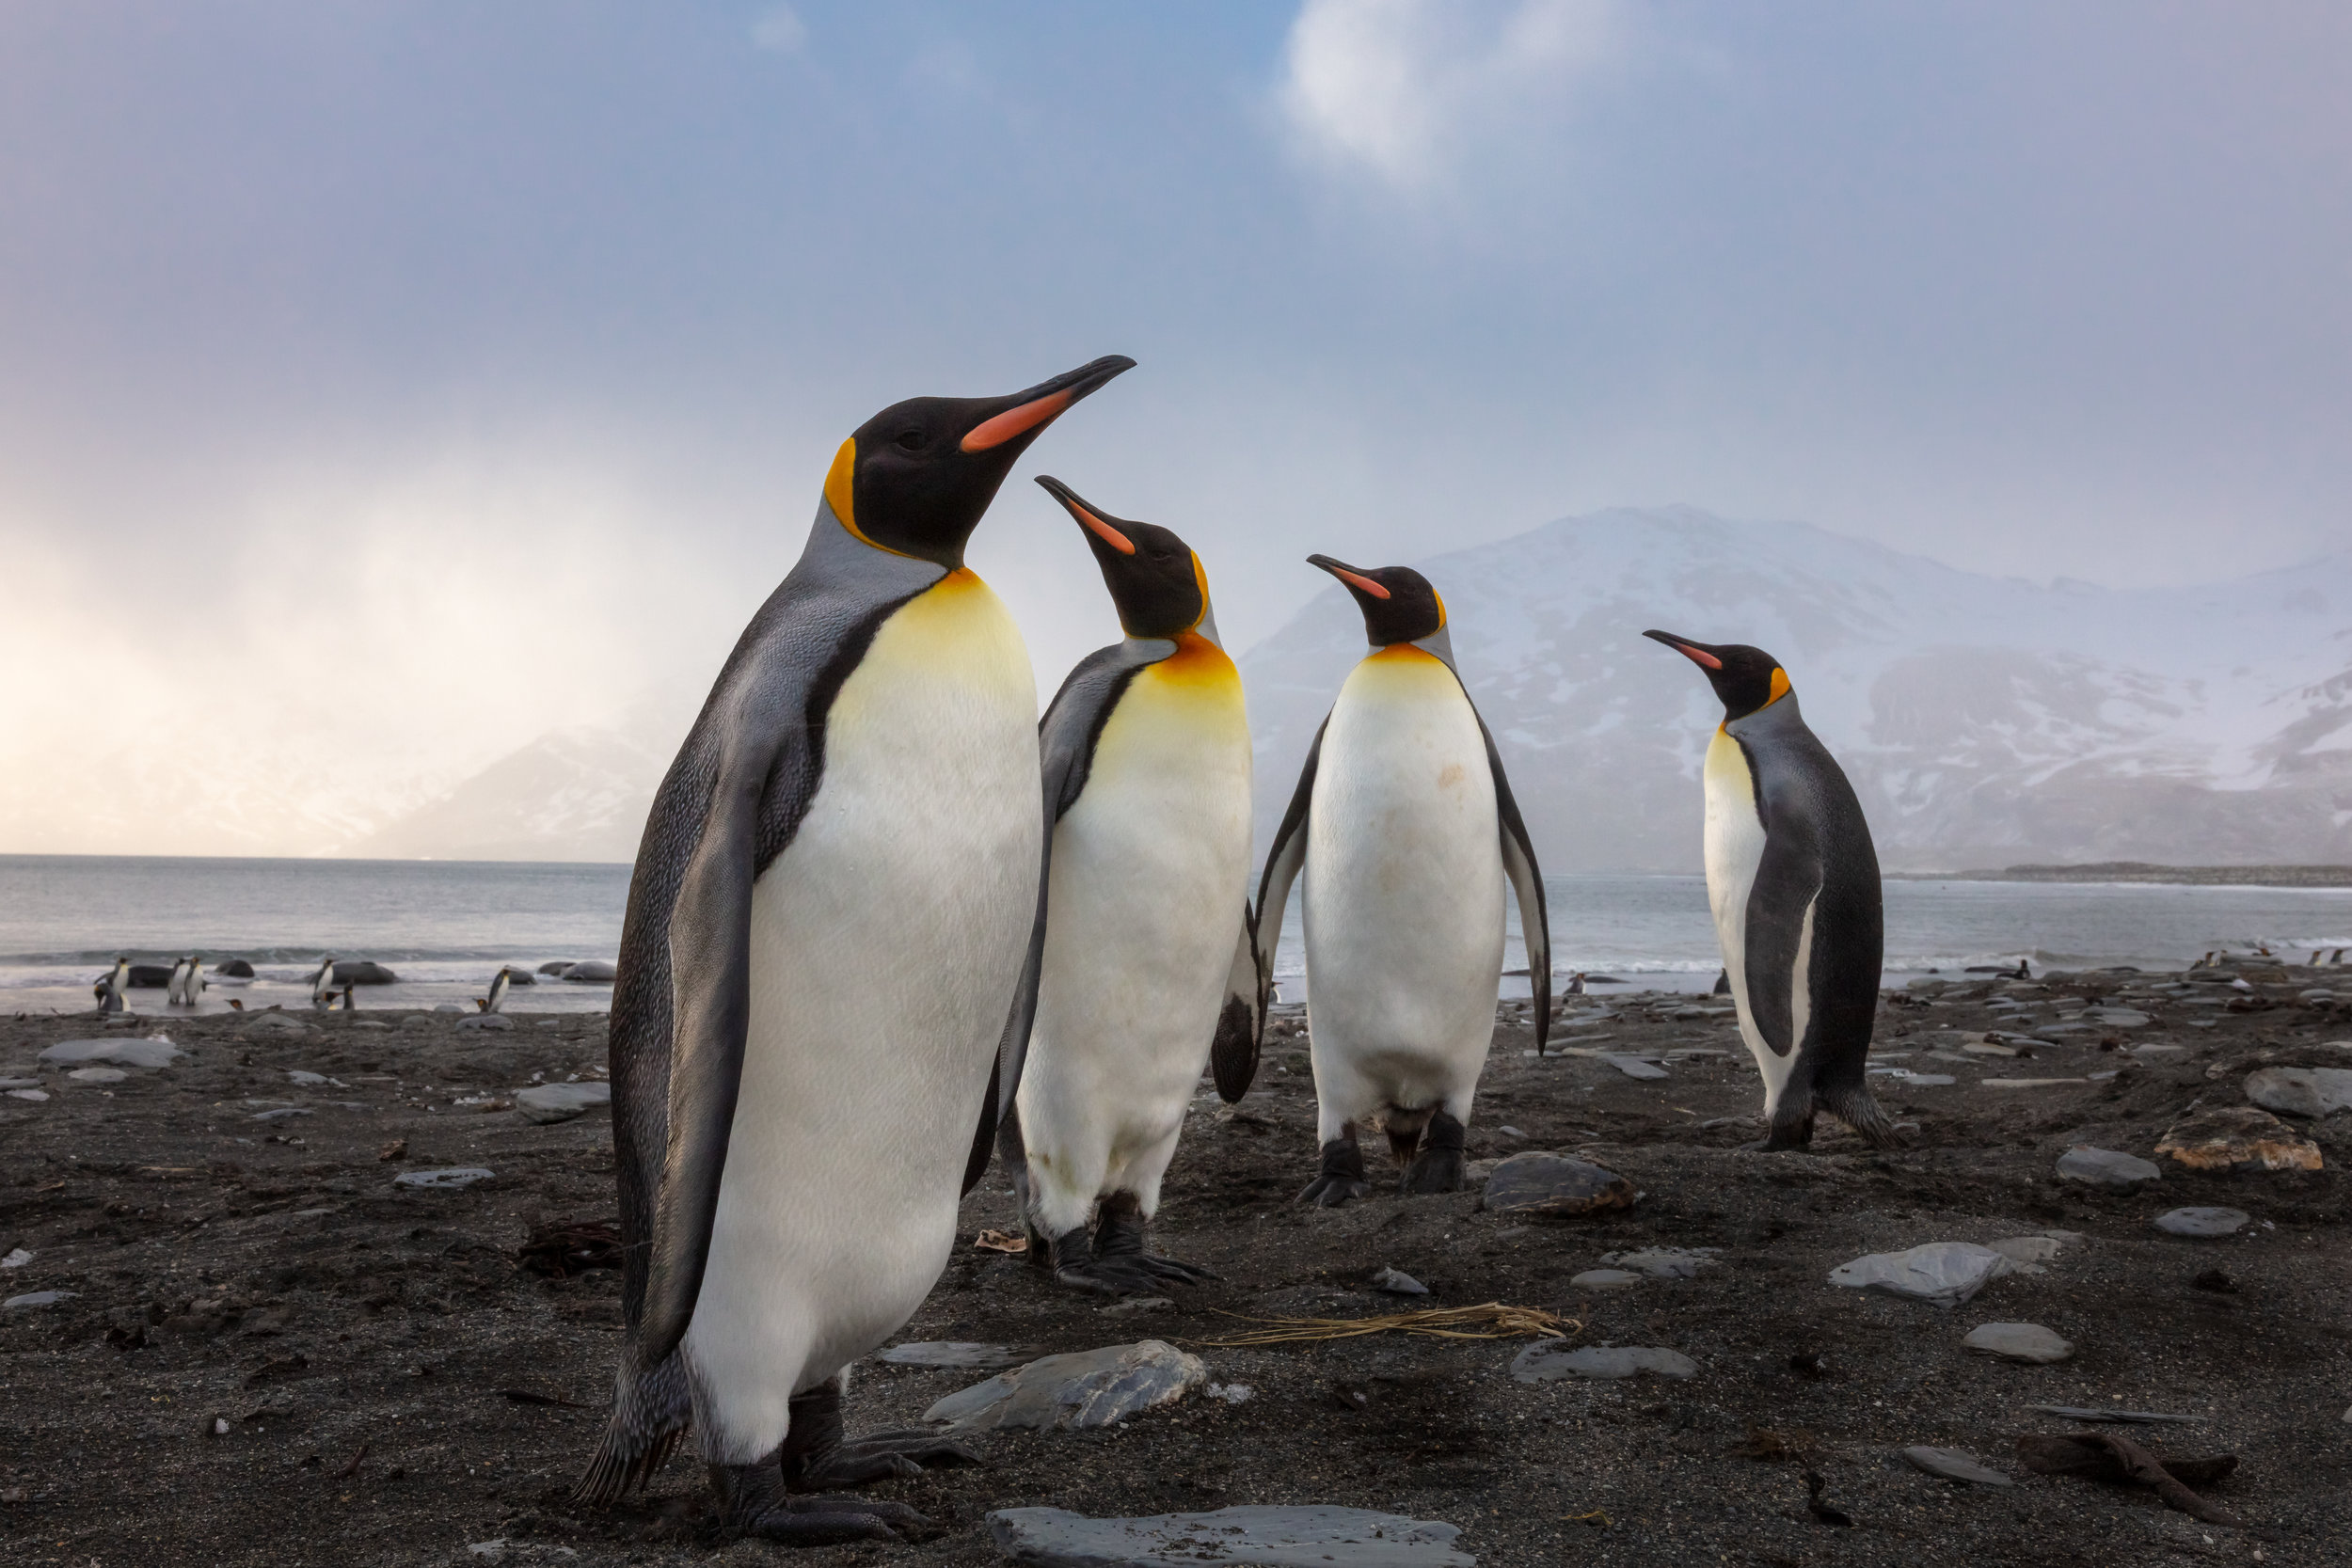 """""""The Contrarian"""" - A quartet of king penguins pause to contemplate which direction to walk as they explore the coastline at sunrise.  Over the past few weeks I was on an expedition for my Stanford Earth project to a place I have dreamed of going since penguins became my favorite animal when I was 3 years old.  I had the incredible privilege to visit the sub-Antarctic isle of South Georgia - home to more than 1,000,000 king penguins - alongside several of my photography idols and mentors. I cannot say thank you enough to Tom Mangelsen, Frans Lanting, Art Wolfe, Justin Black, Sue Cedarholm, Chris Eckstrom, Yuri Choufour, and the expedition team that made this dream a reality.  Keep scrolling for images and stories from the expedition!"""